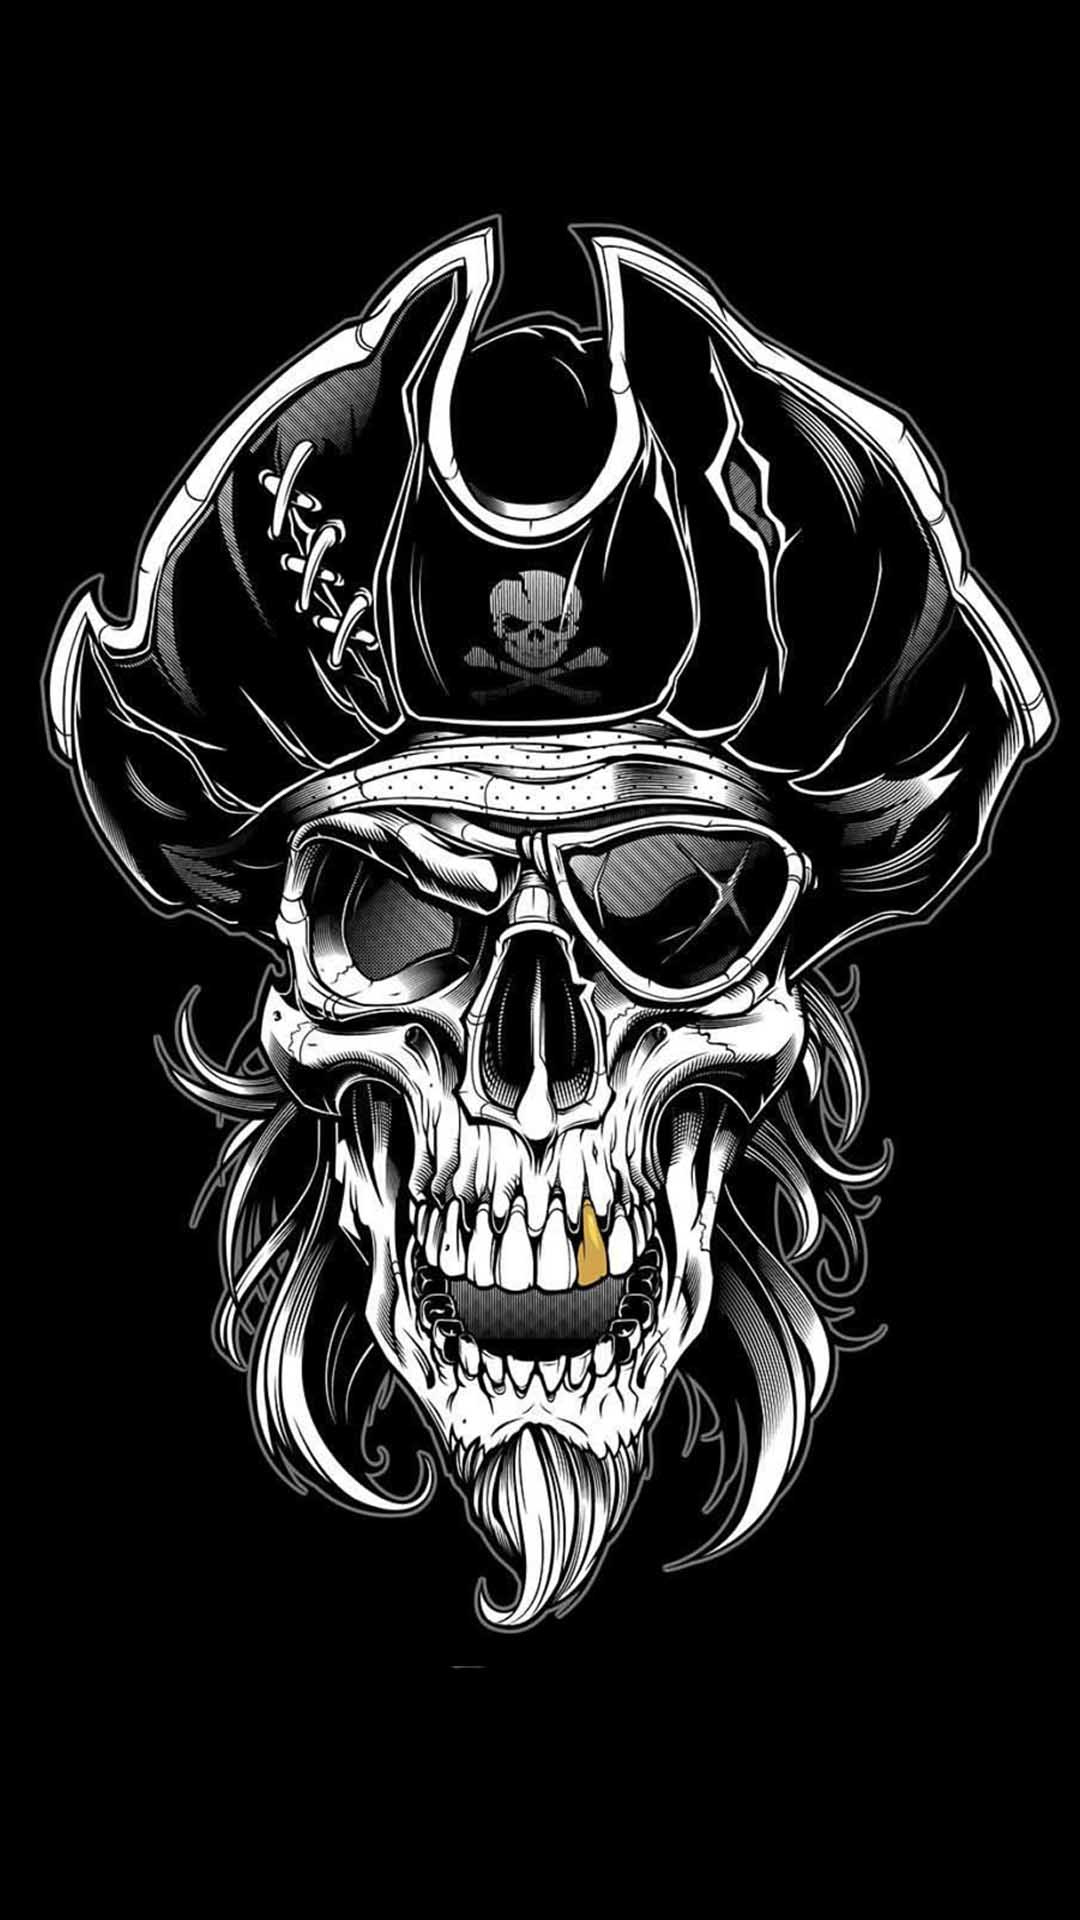 iPhone wallpaper skull pirate Skull